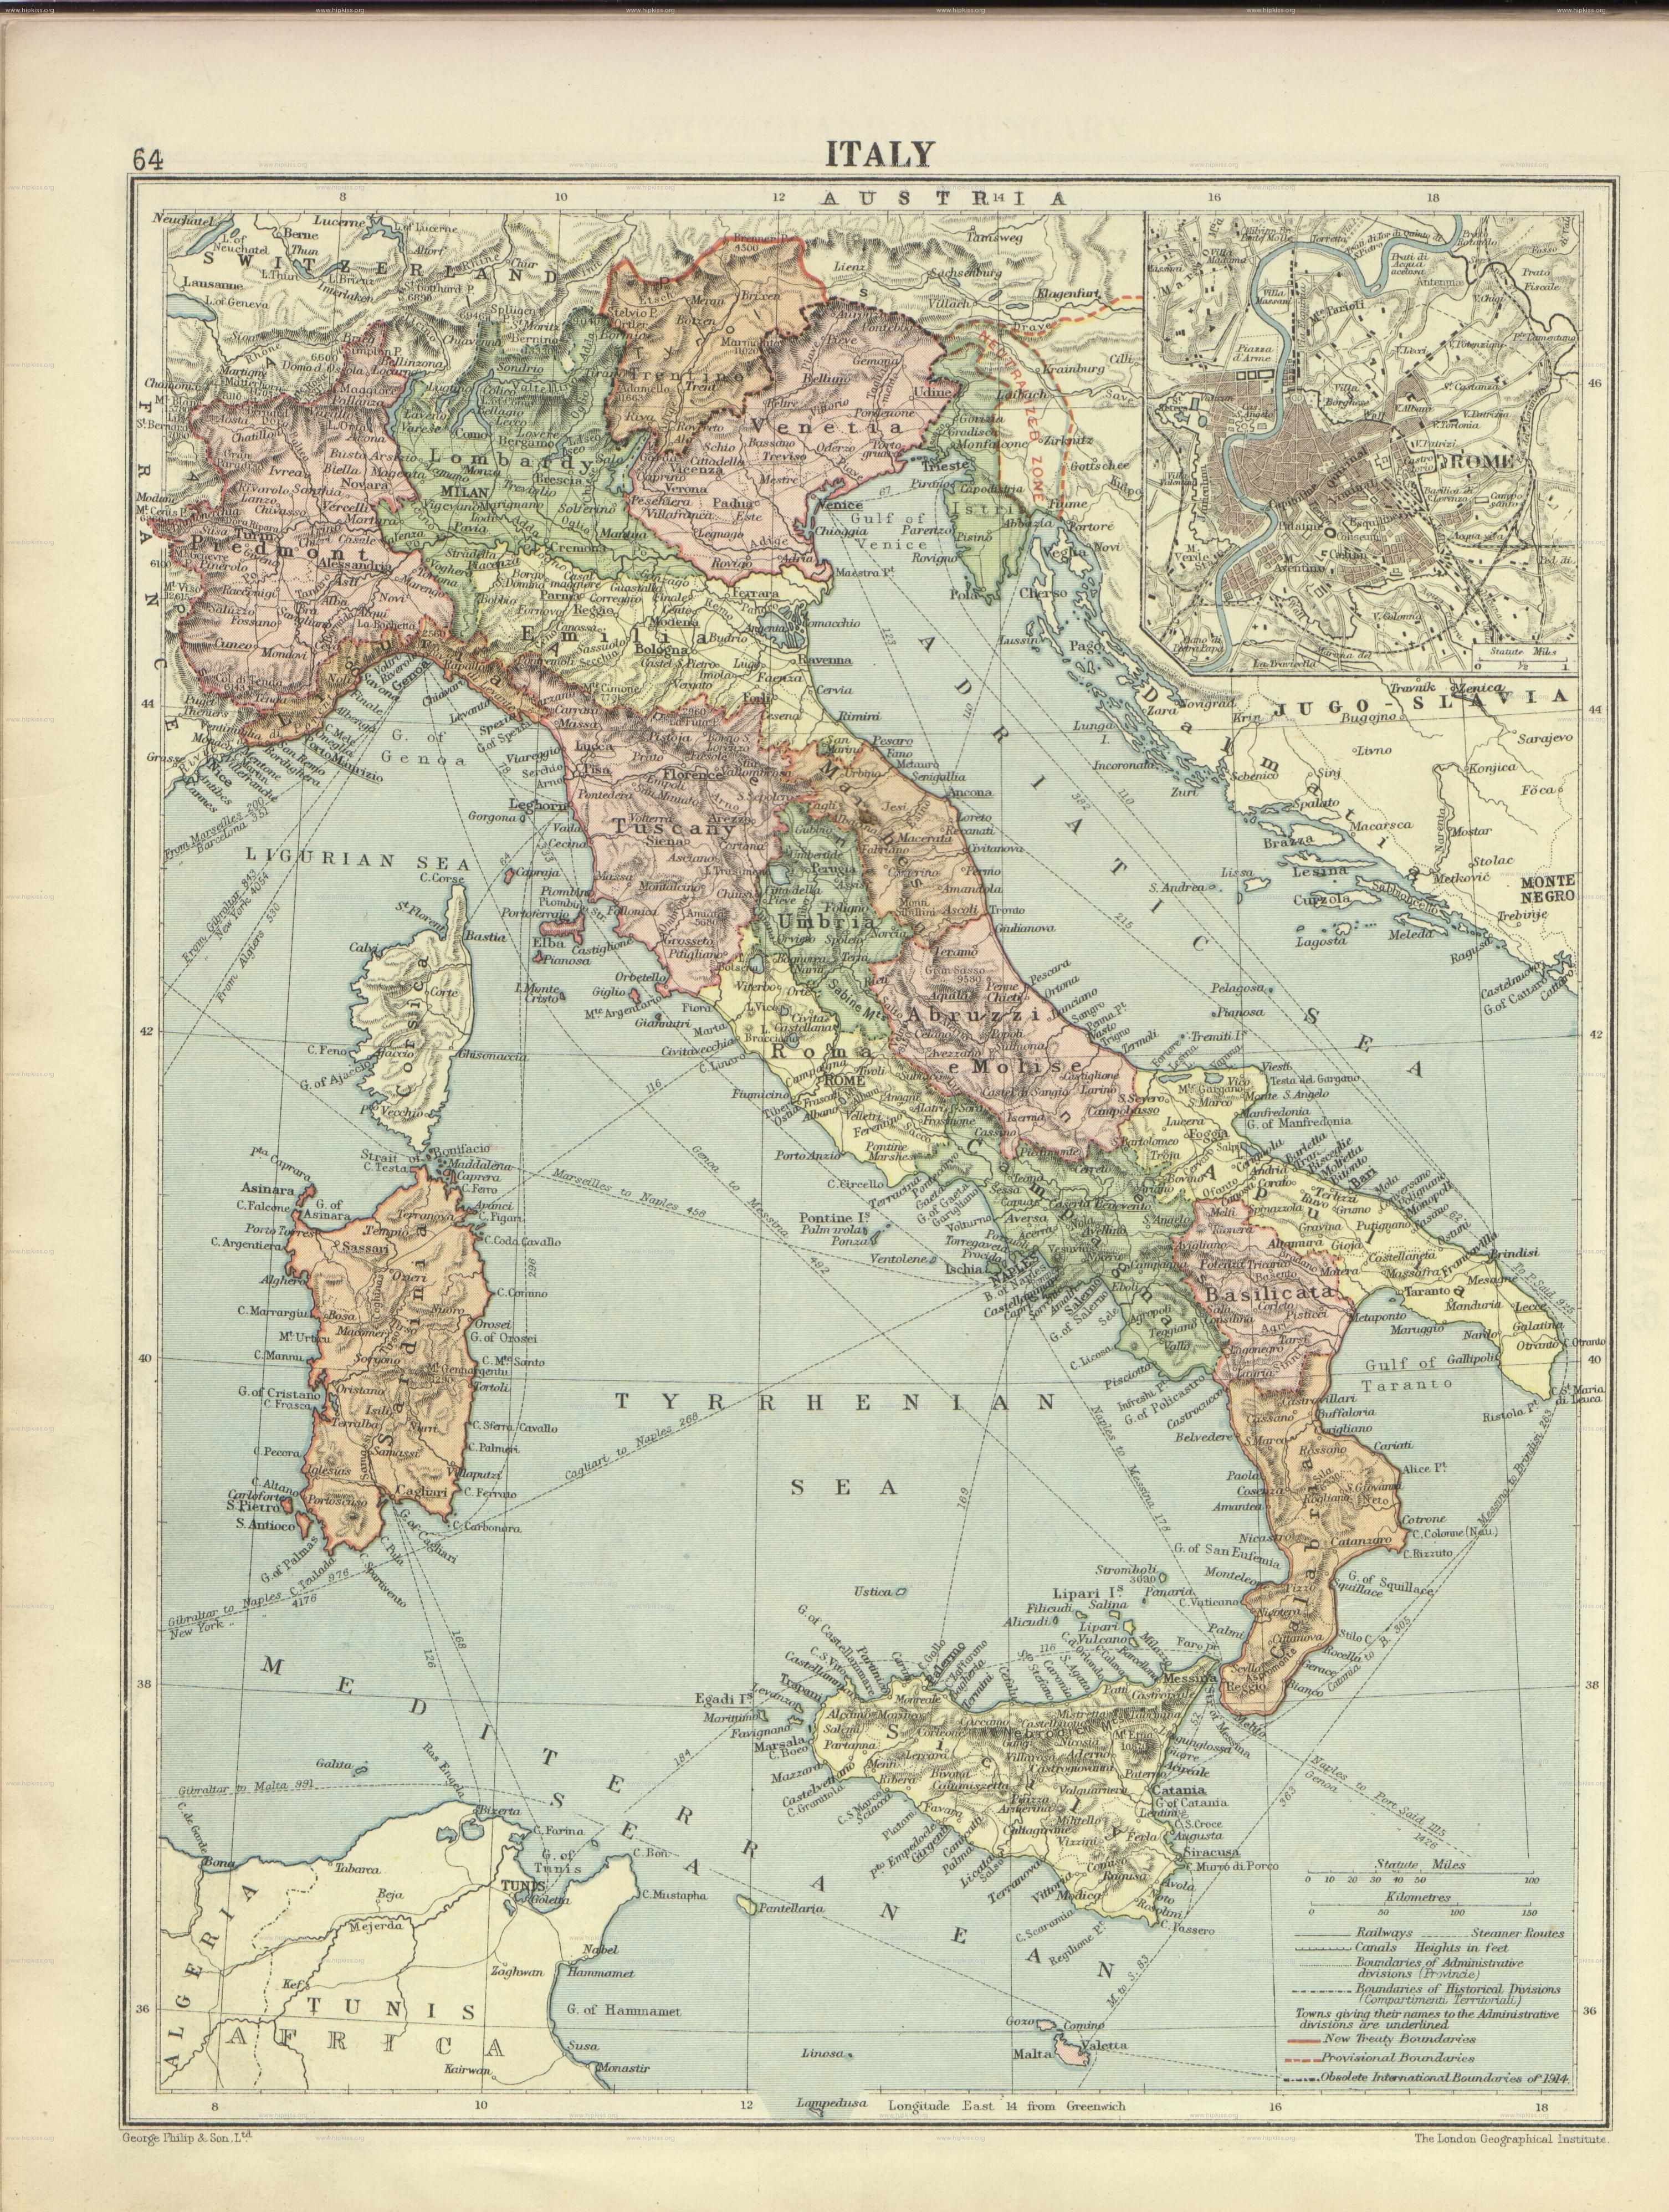 Historic Maps Of Italy Italy London Geographical Institute - 1920 map of us